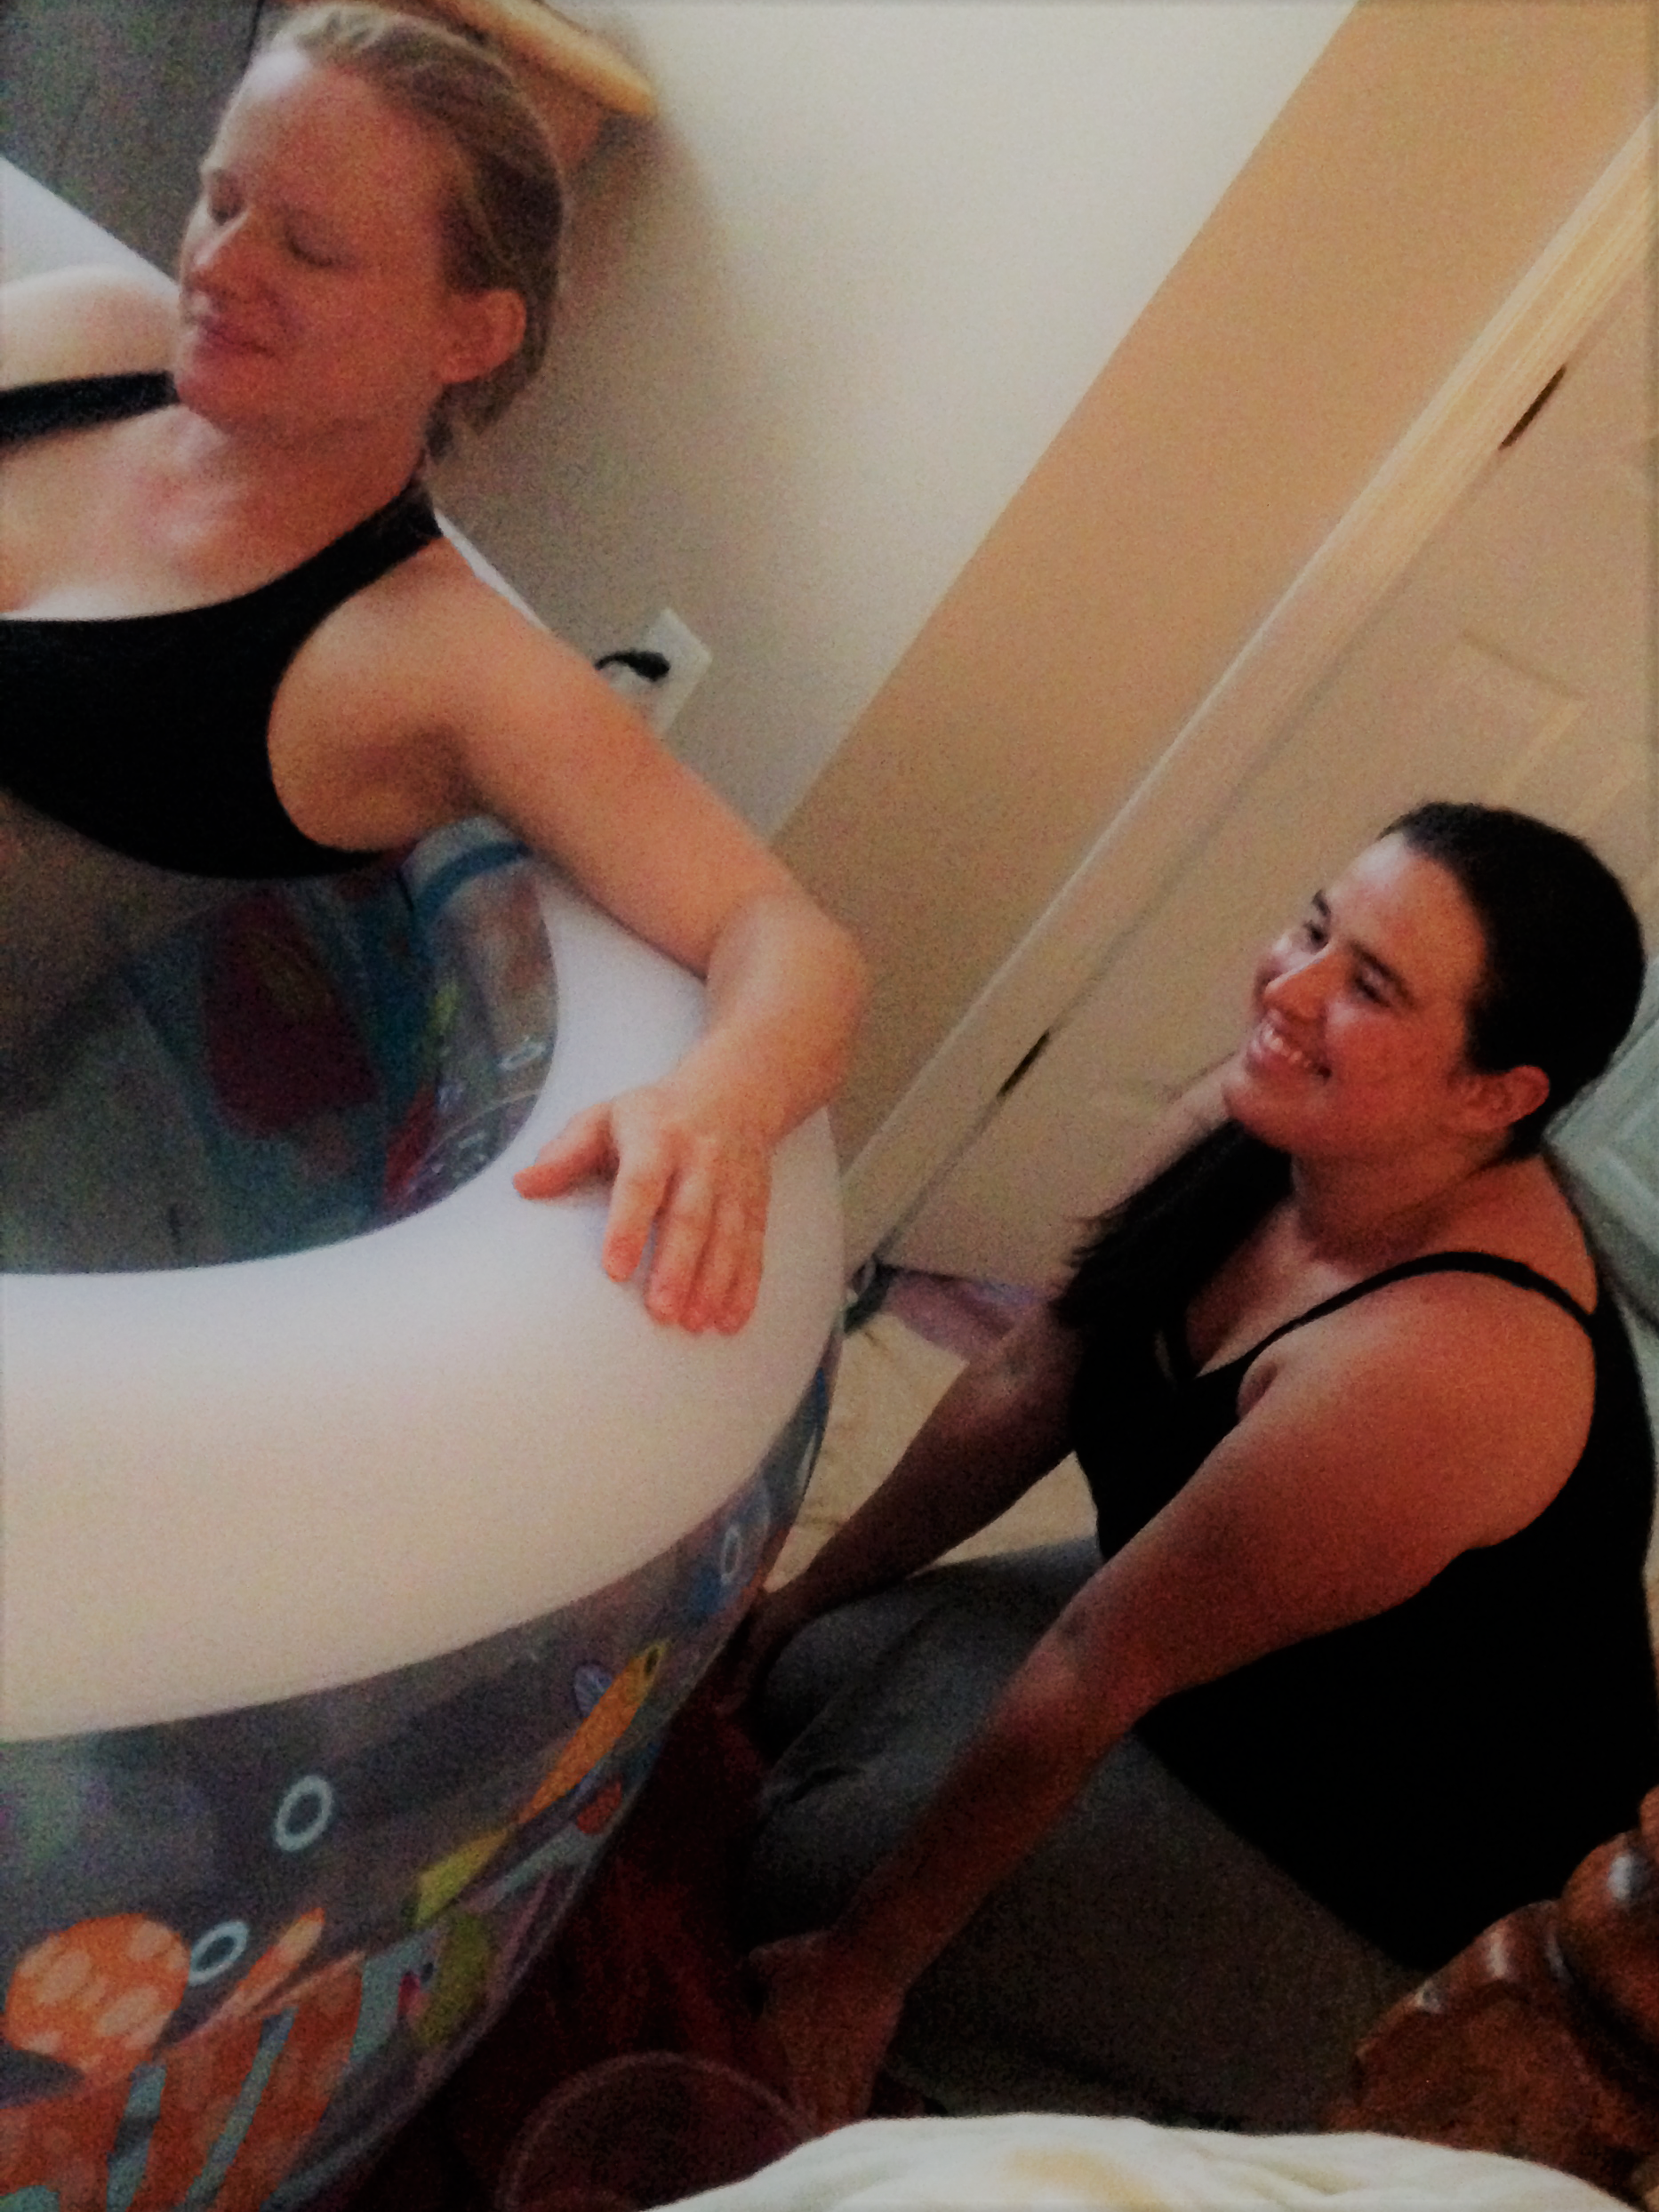 Loving the fishy tub! Tabitha assisting at a fabulous homebirth in Gainesville